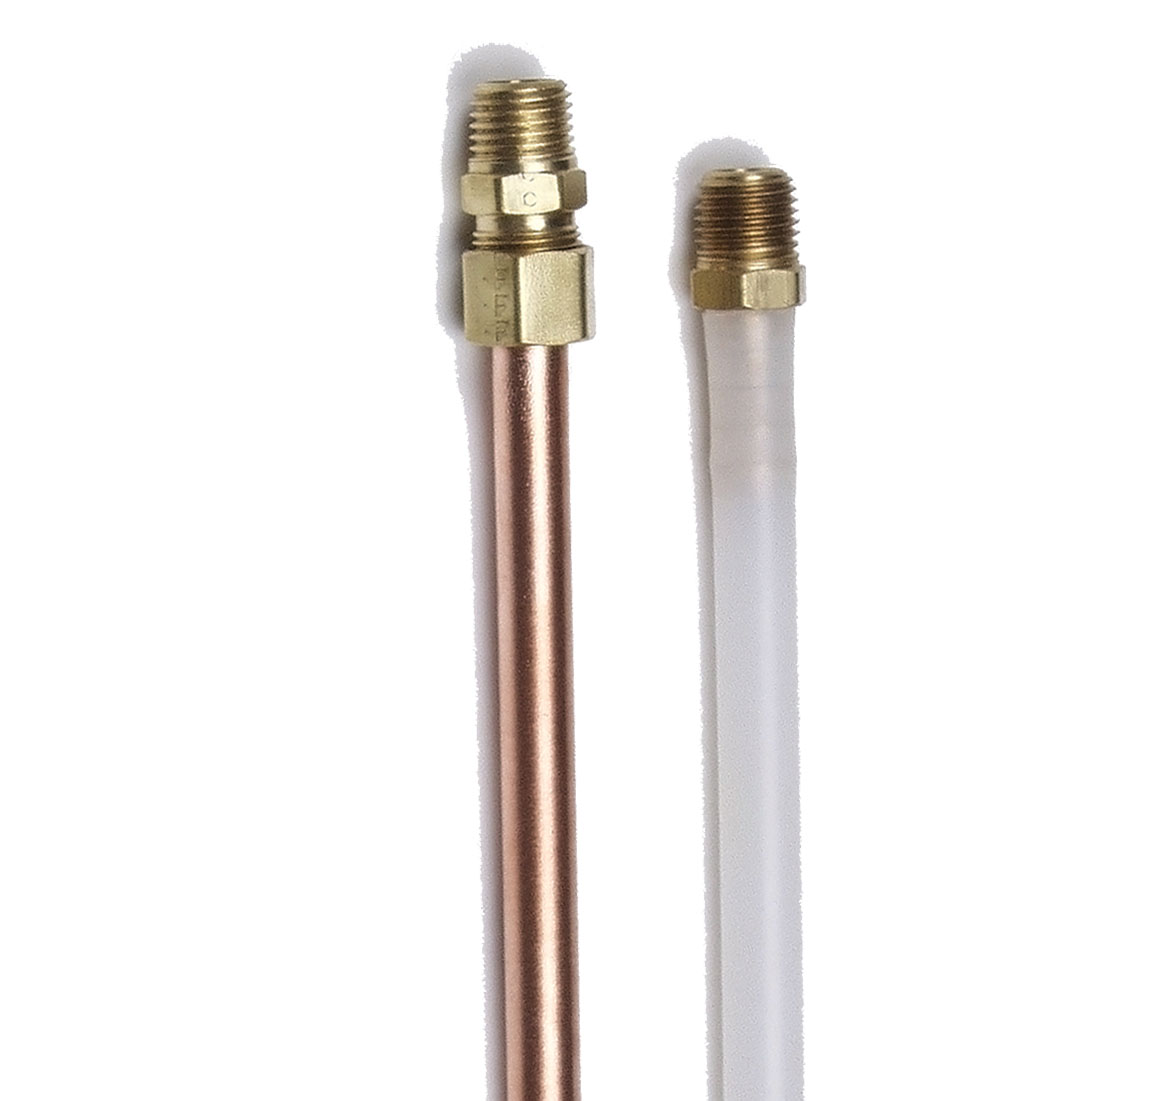 Dip Tubes and Syphon Tubes